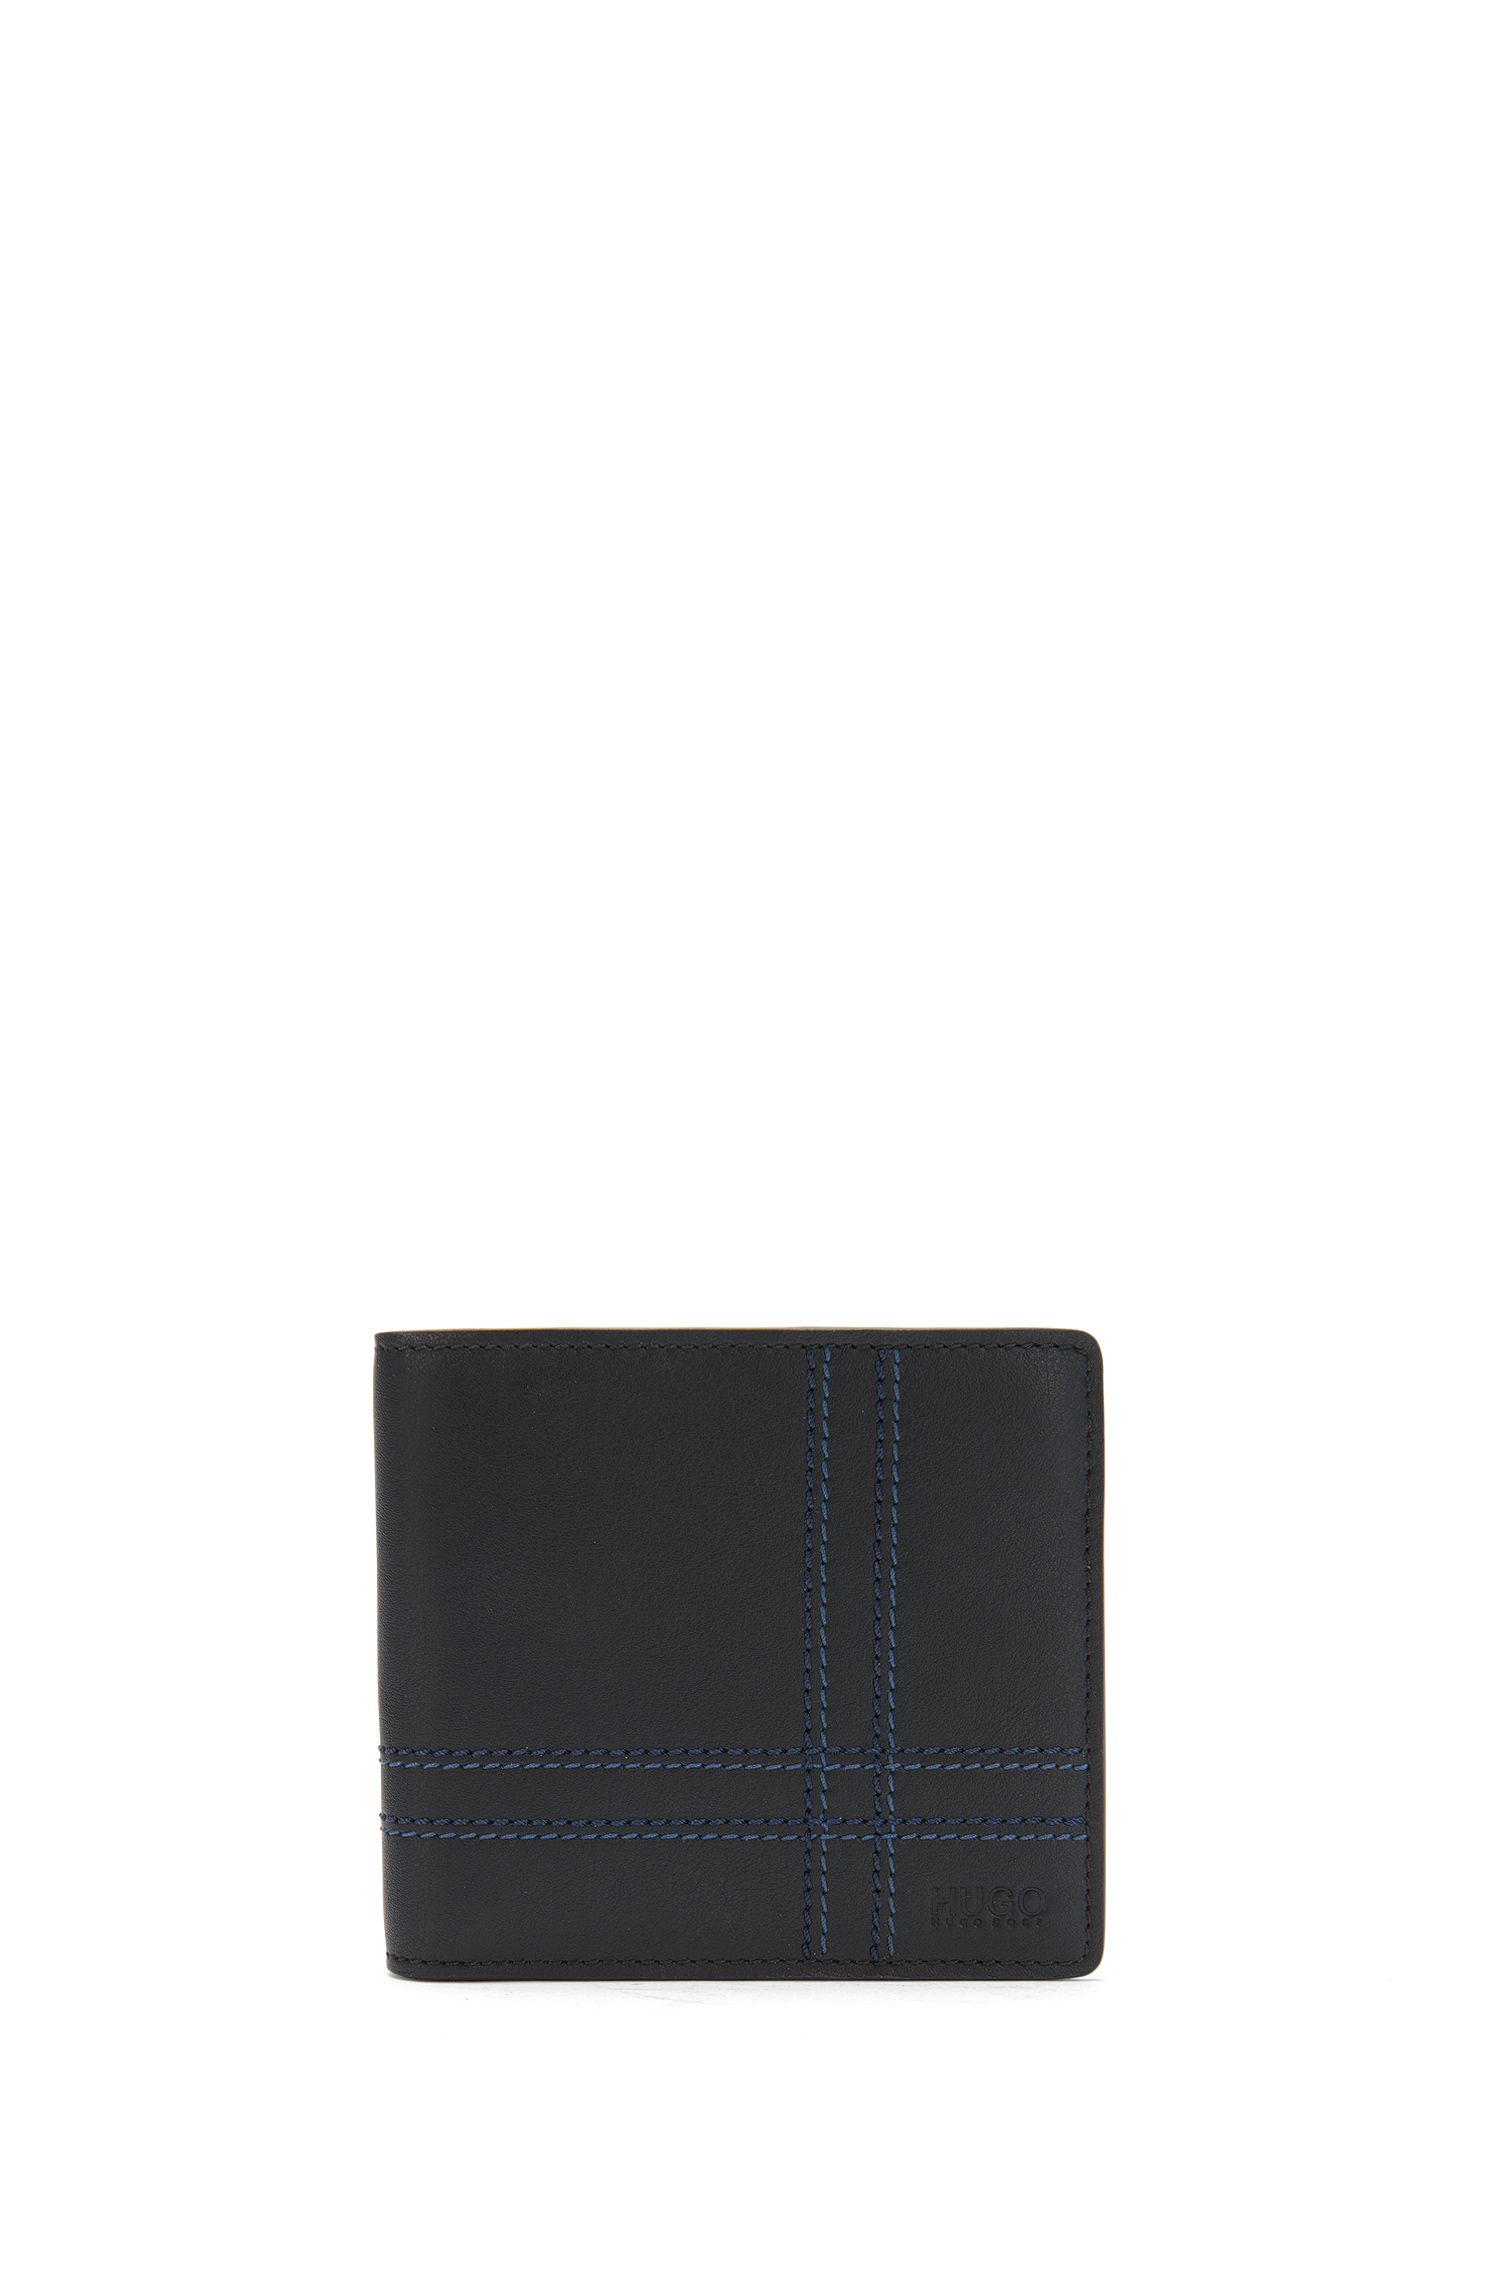 Wallet and card case in leather with decorative topstitching: 'GbH17ST_8 cc S card'